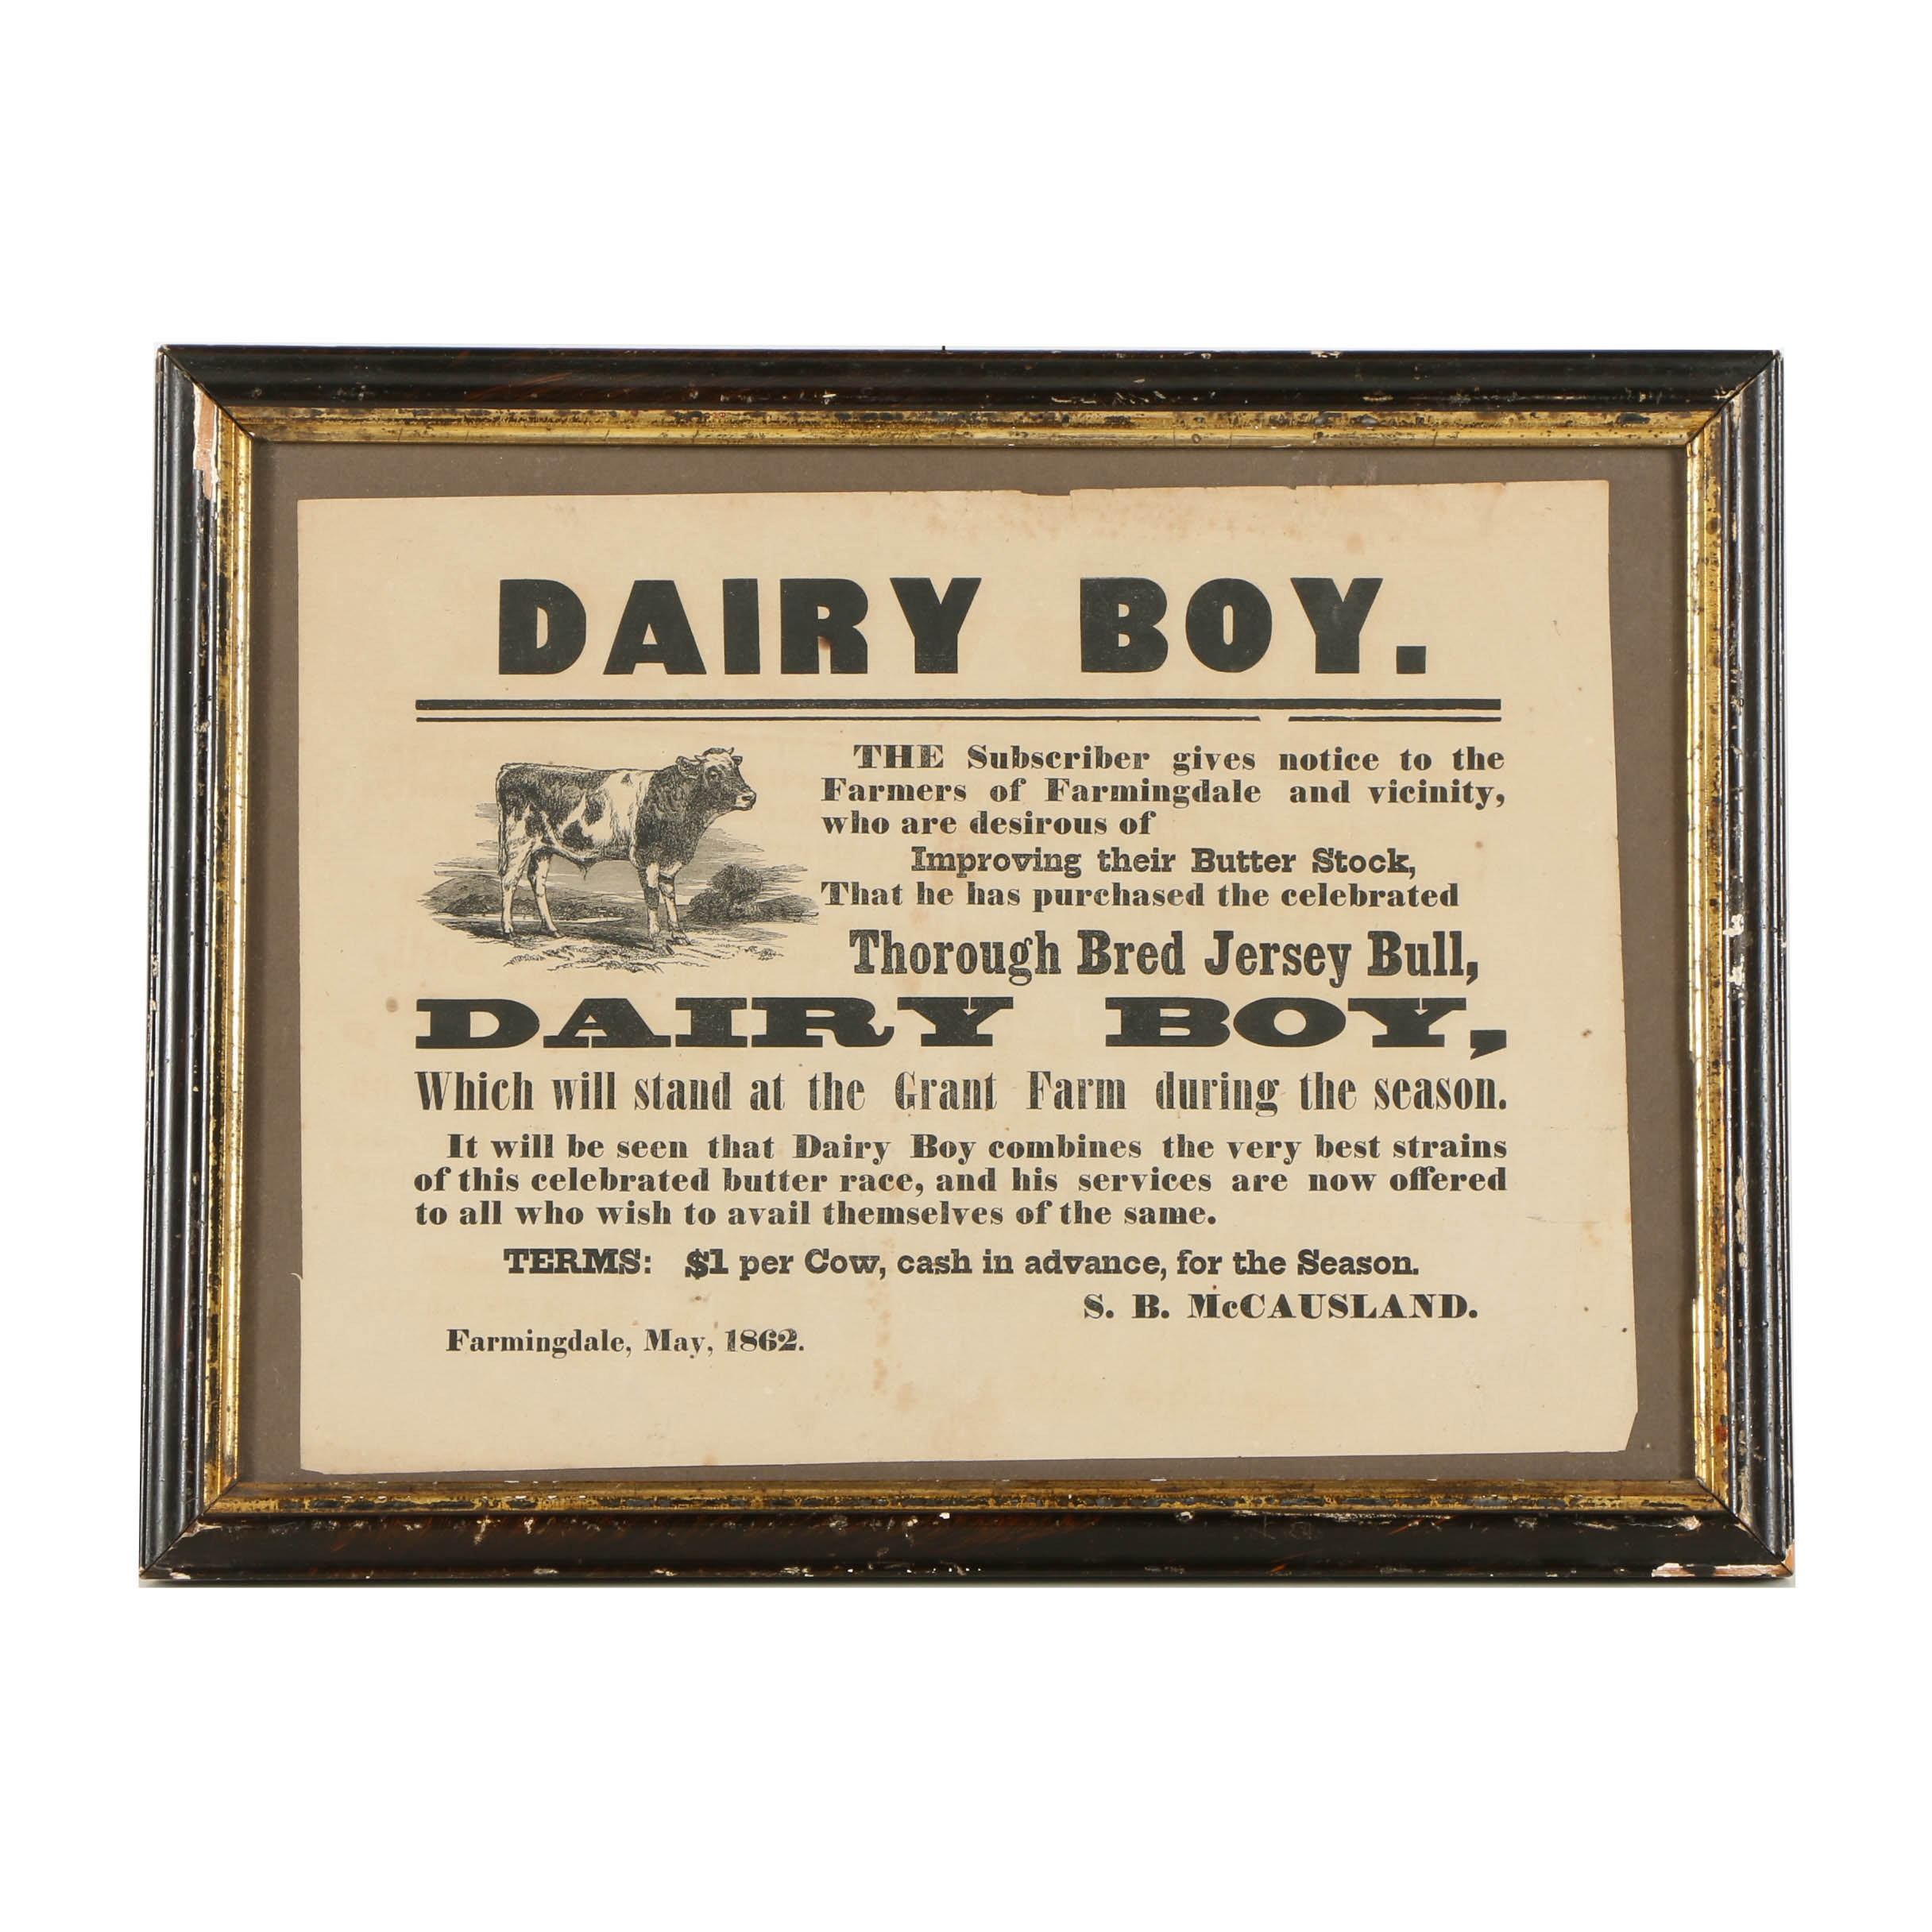 Lithograph Print on Paper of a Dairy Boy Cow Advertisement